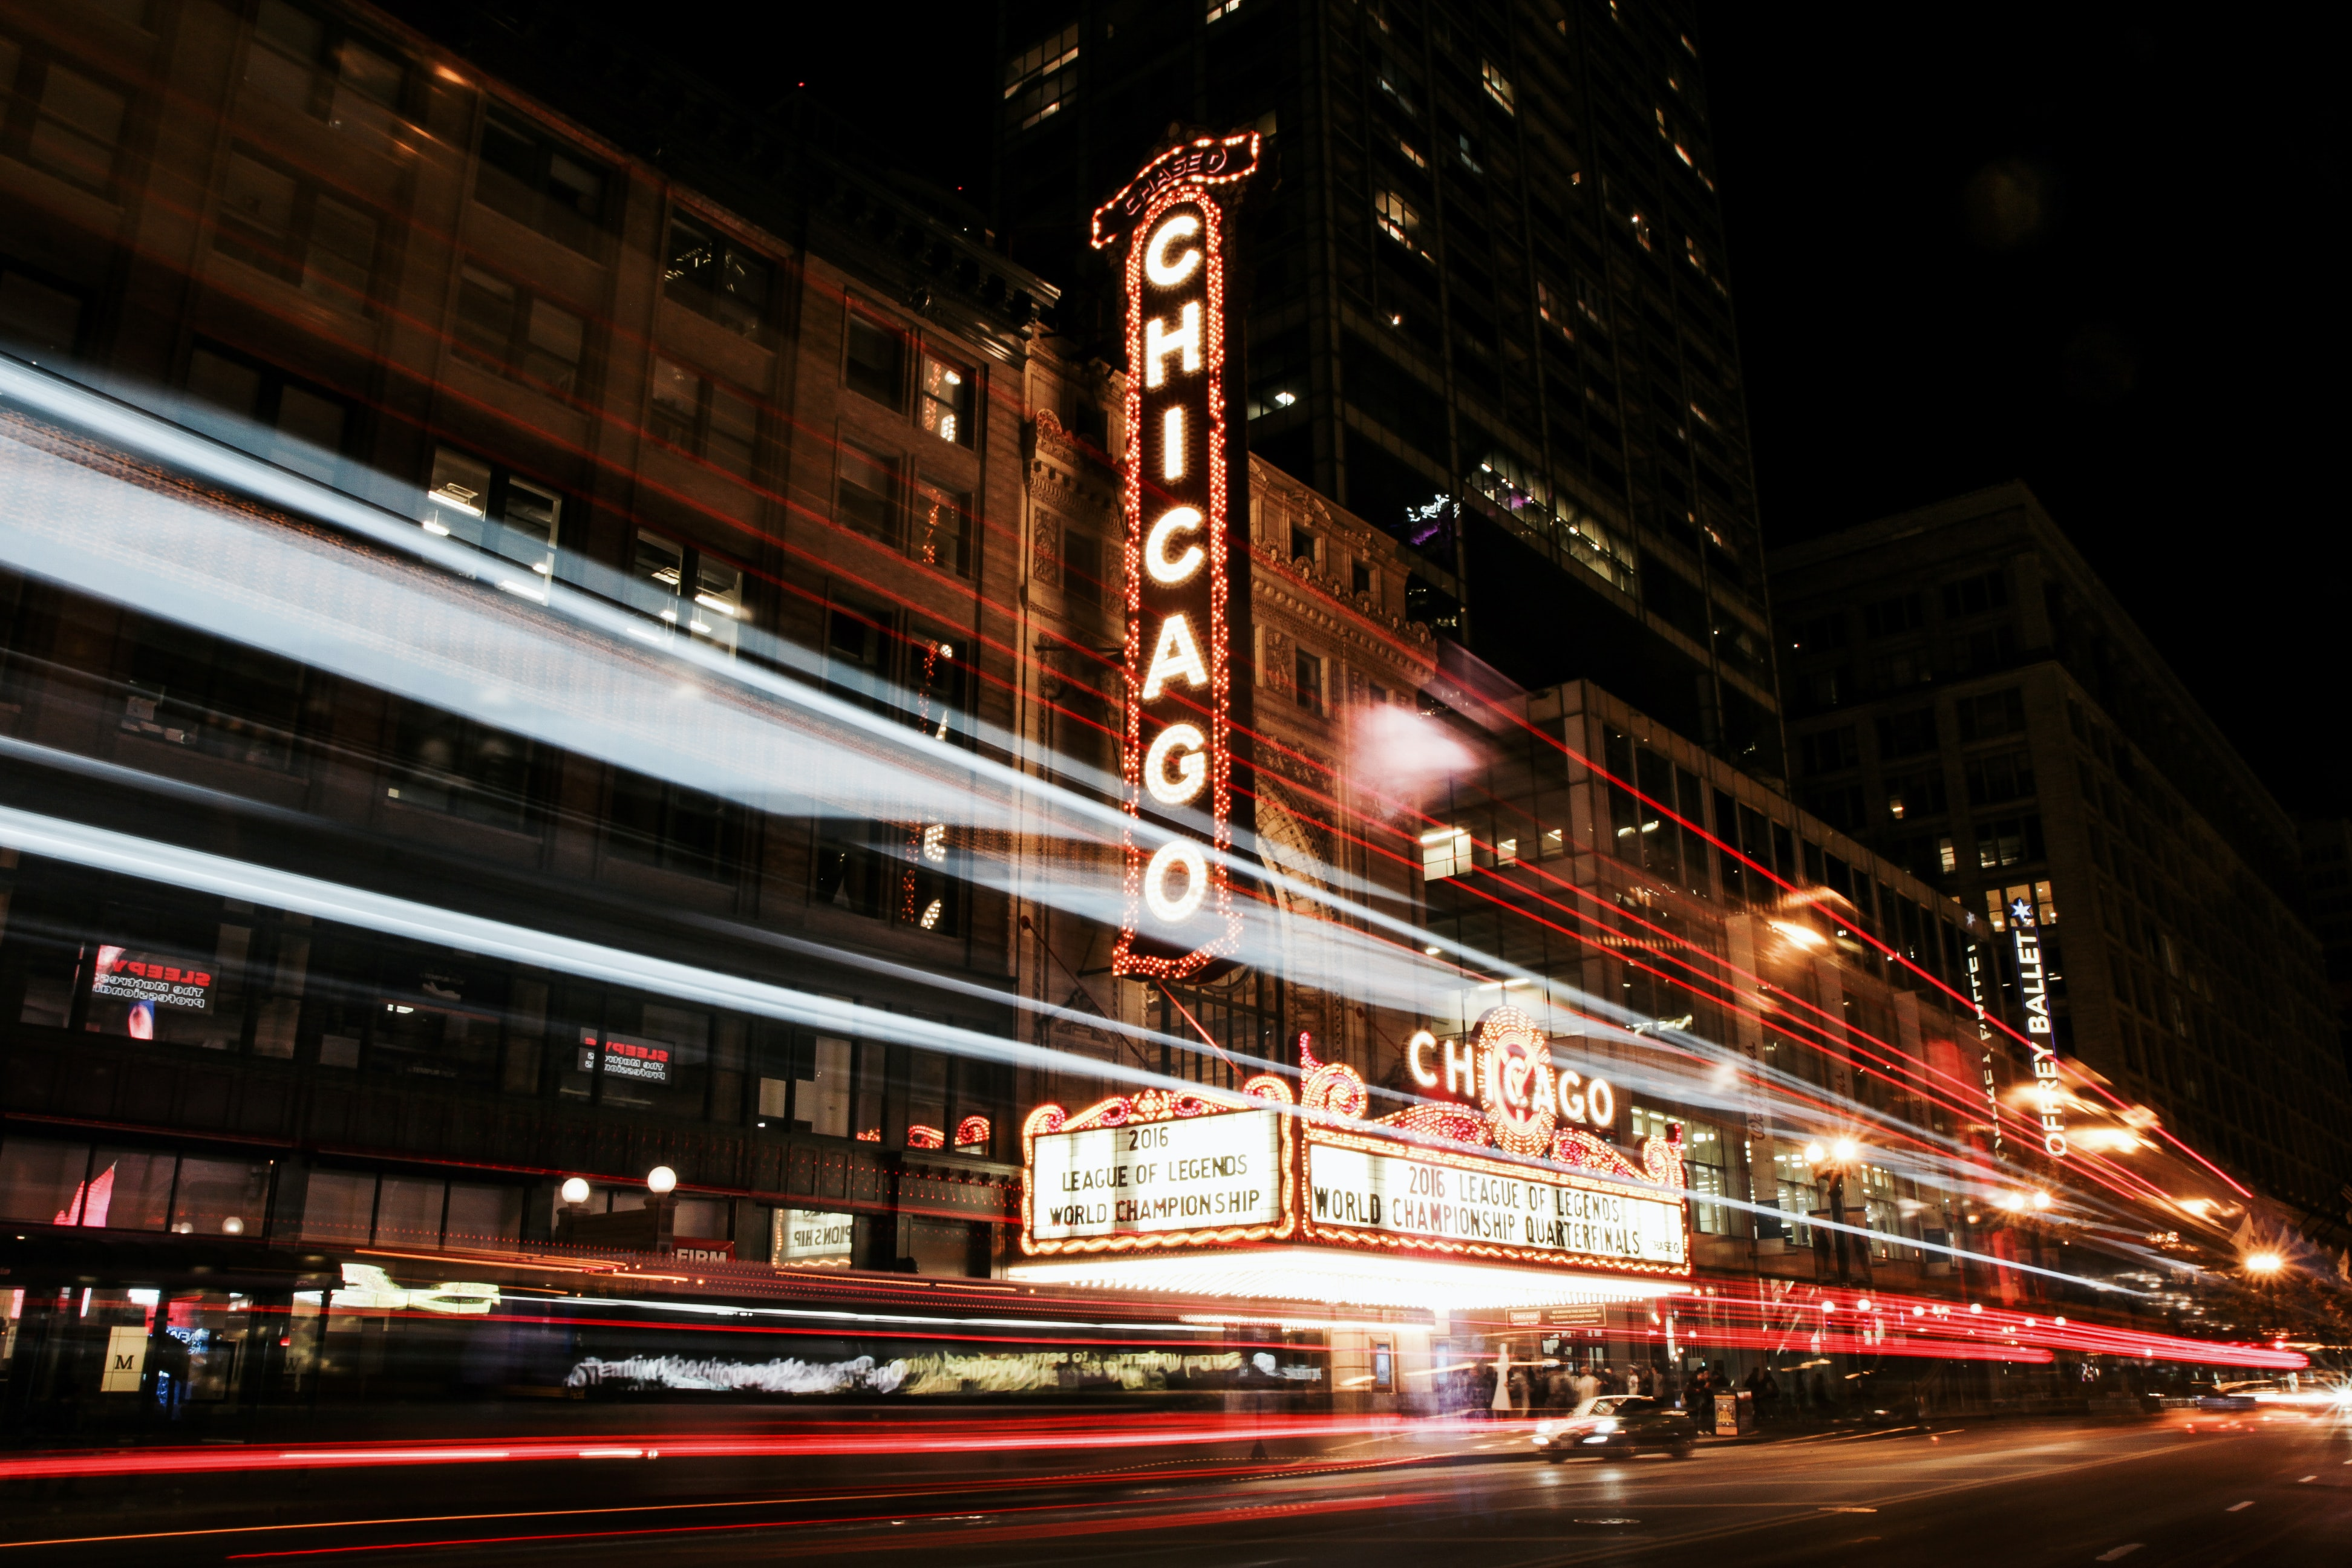 Long exposure of nighttime cars in Chicago with neon signs in the background